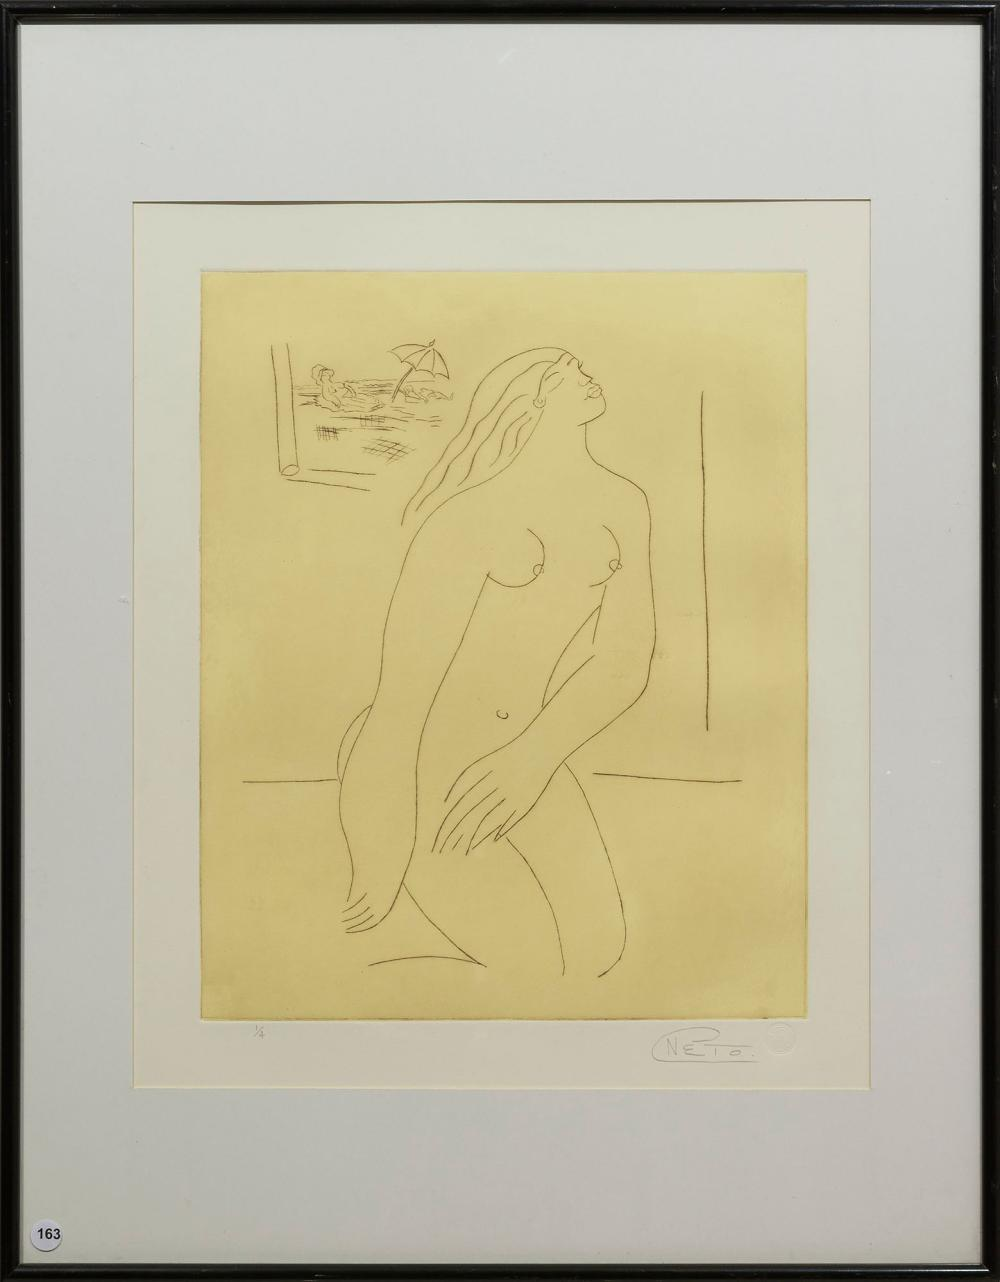 Carlos Neto (SA, born 1955) Etching, Nude, Signed & Numbered 1/4 in Pencil, 55 x 46 sheet size